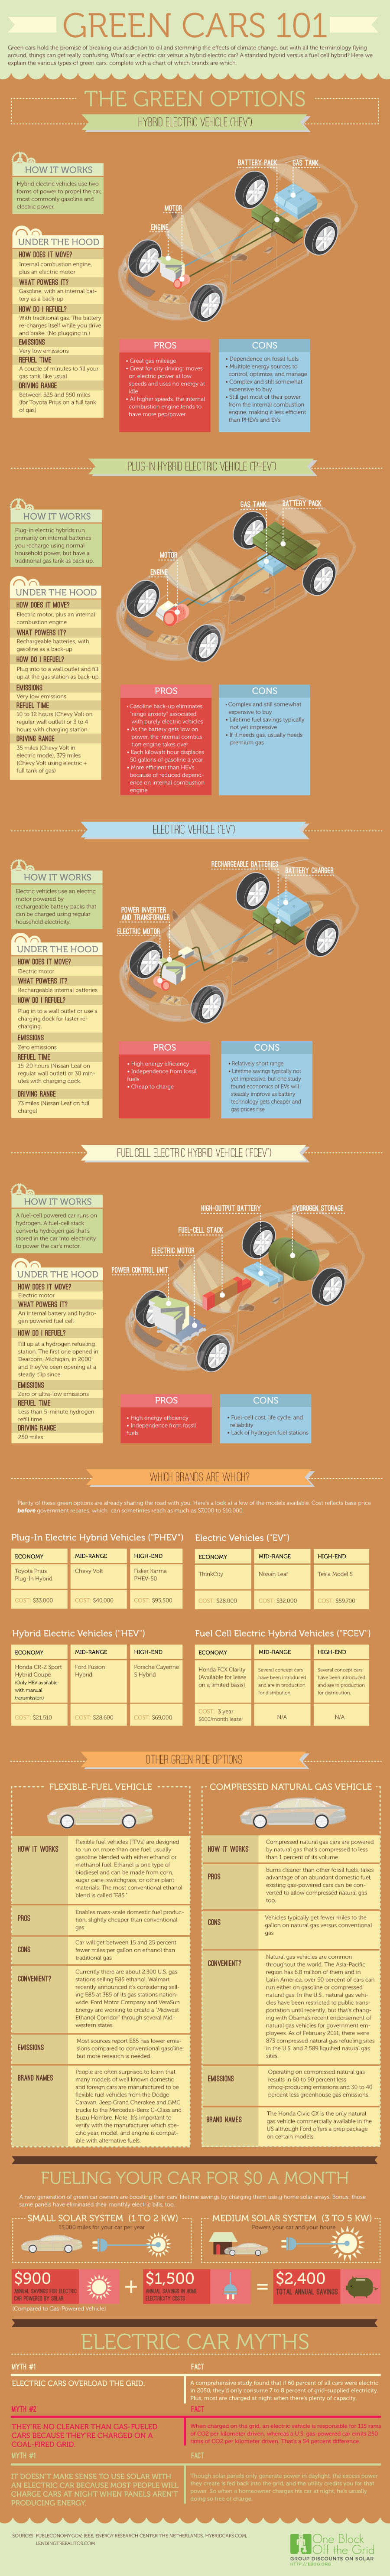 Green Cars Guide-infographic